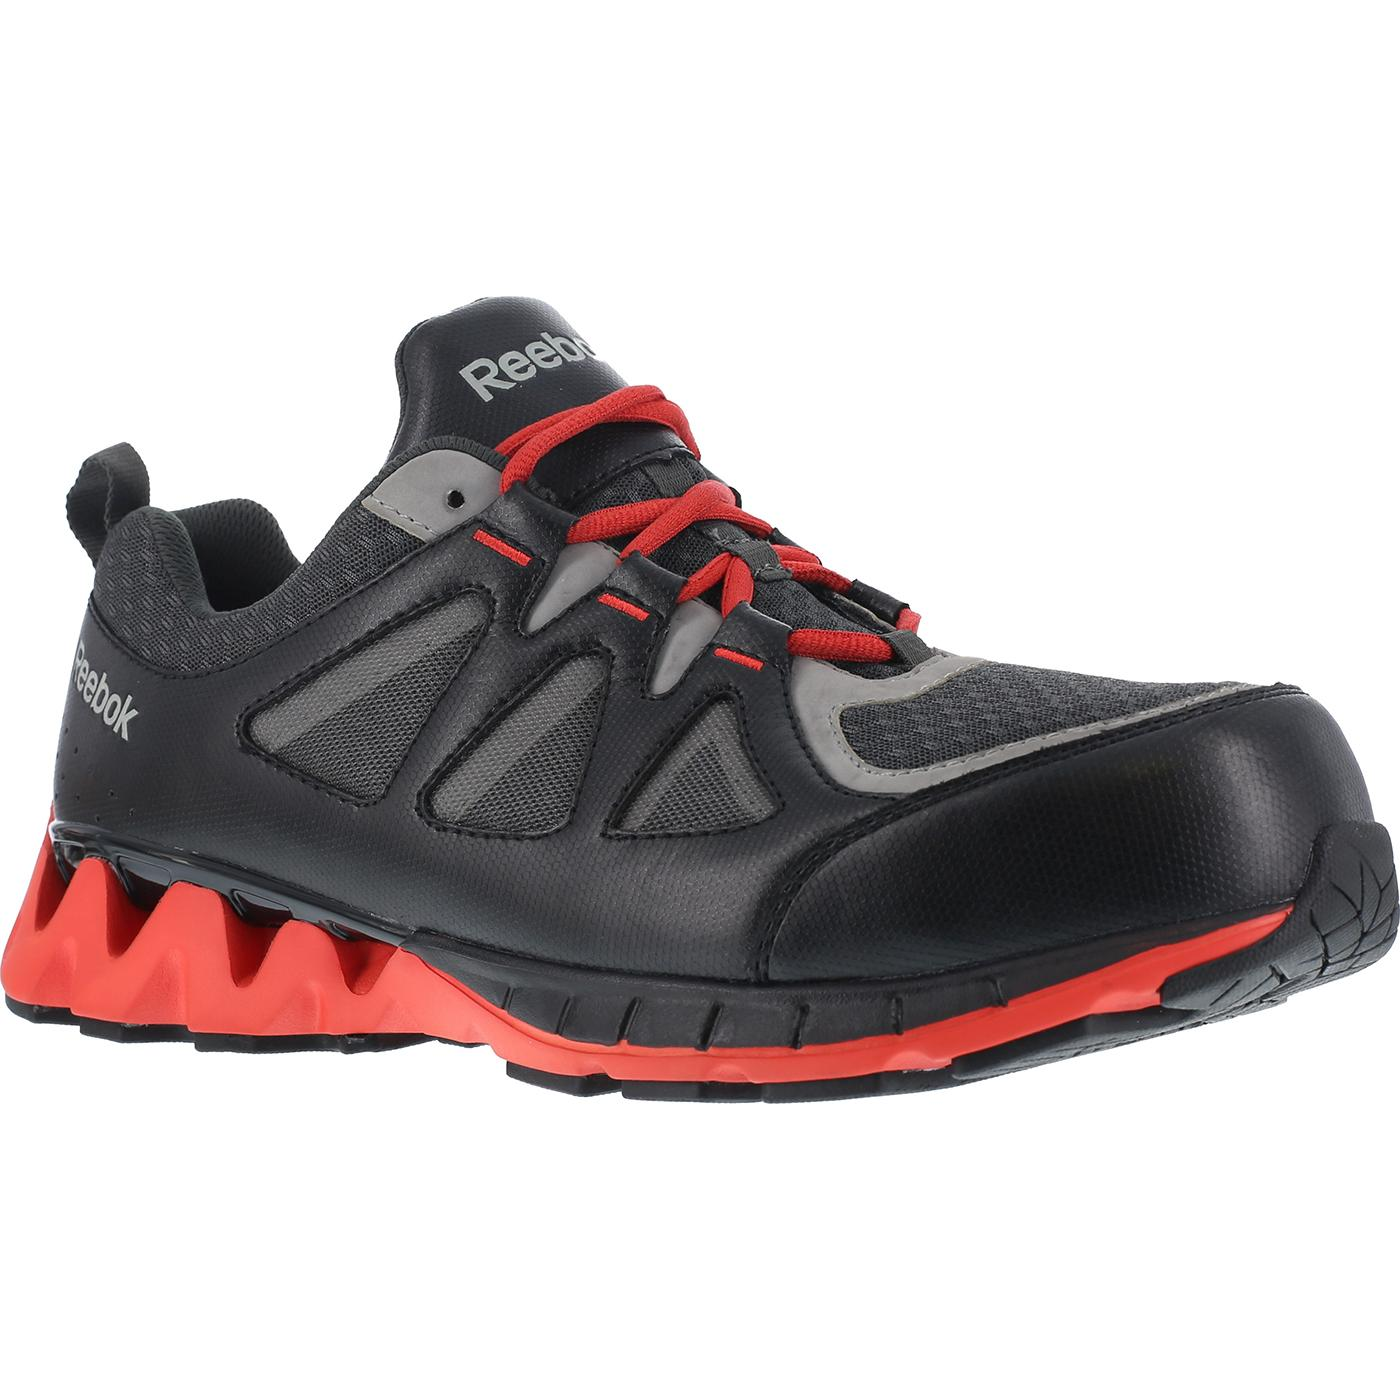 c40478dbe12b23 Reebok Zigkick Work Composite Toe Static-Dissipative Work Athletic  OxfordReebok Zigkick Work Composite Toe Static-Dissipative Work Athletic  Oxford